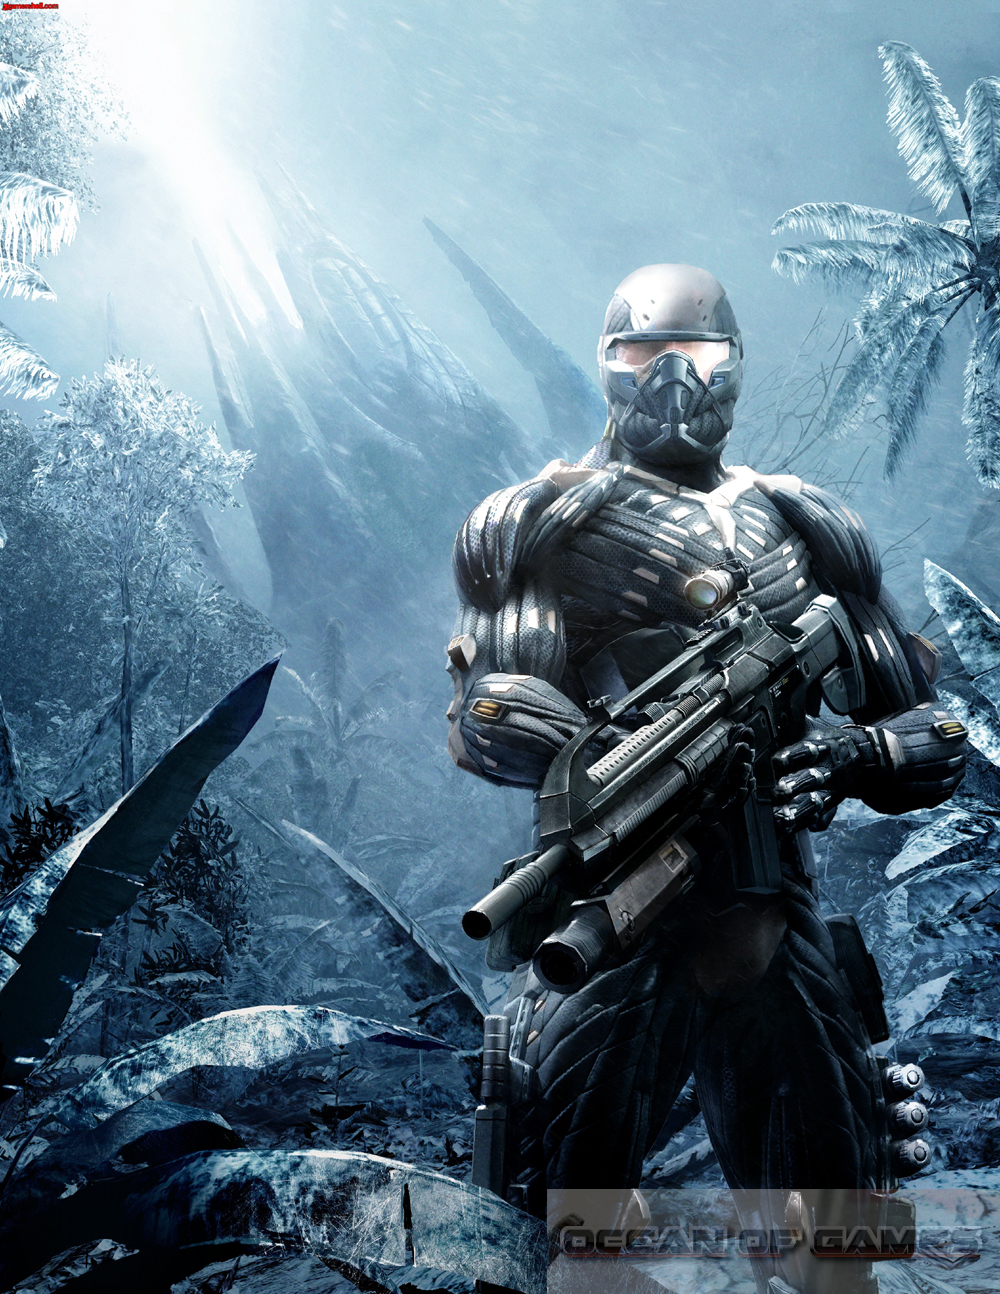 Crysis Features